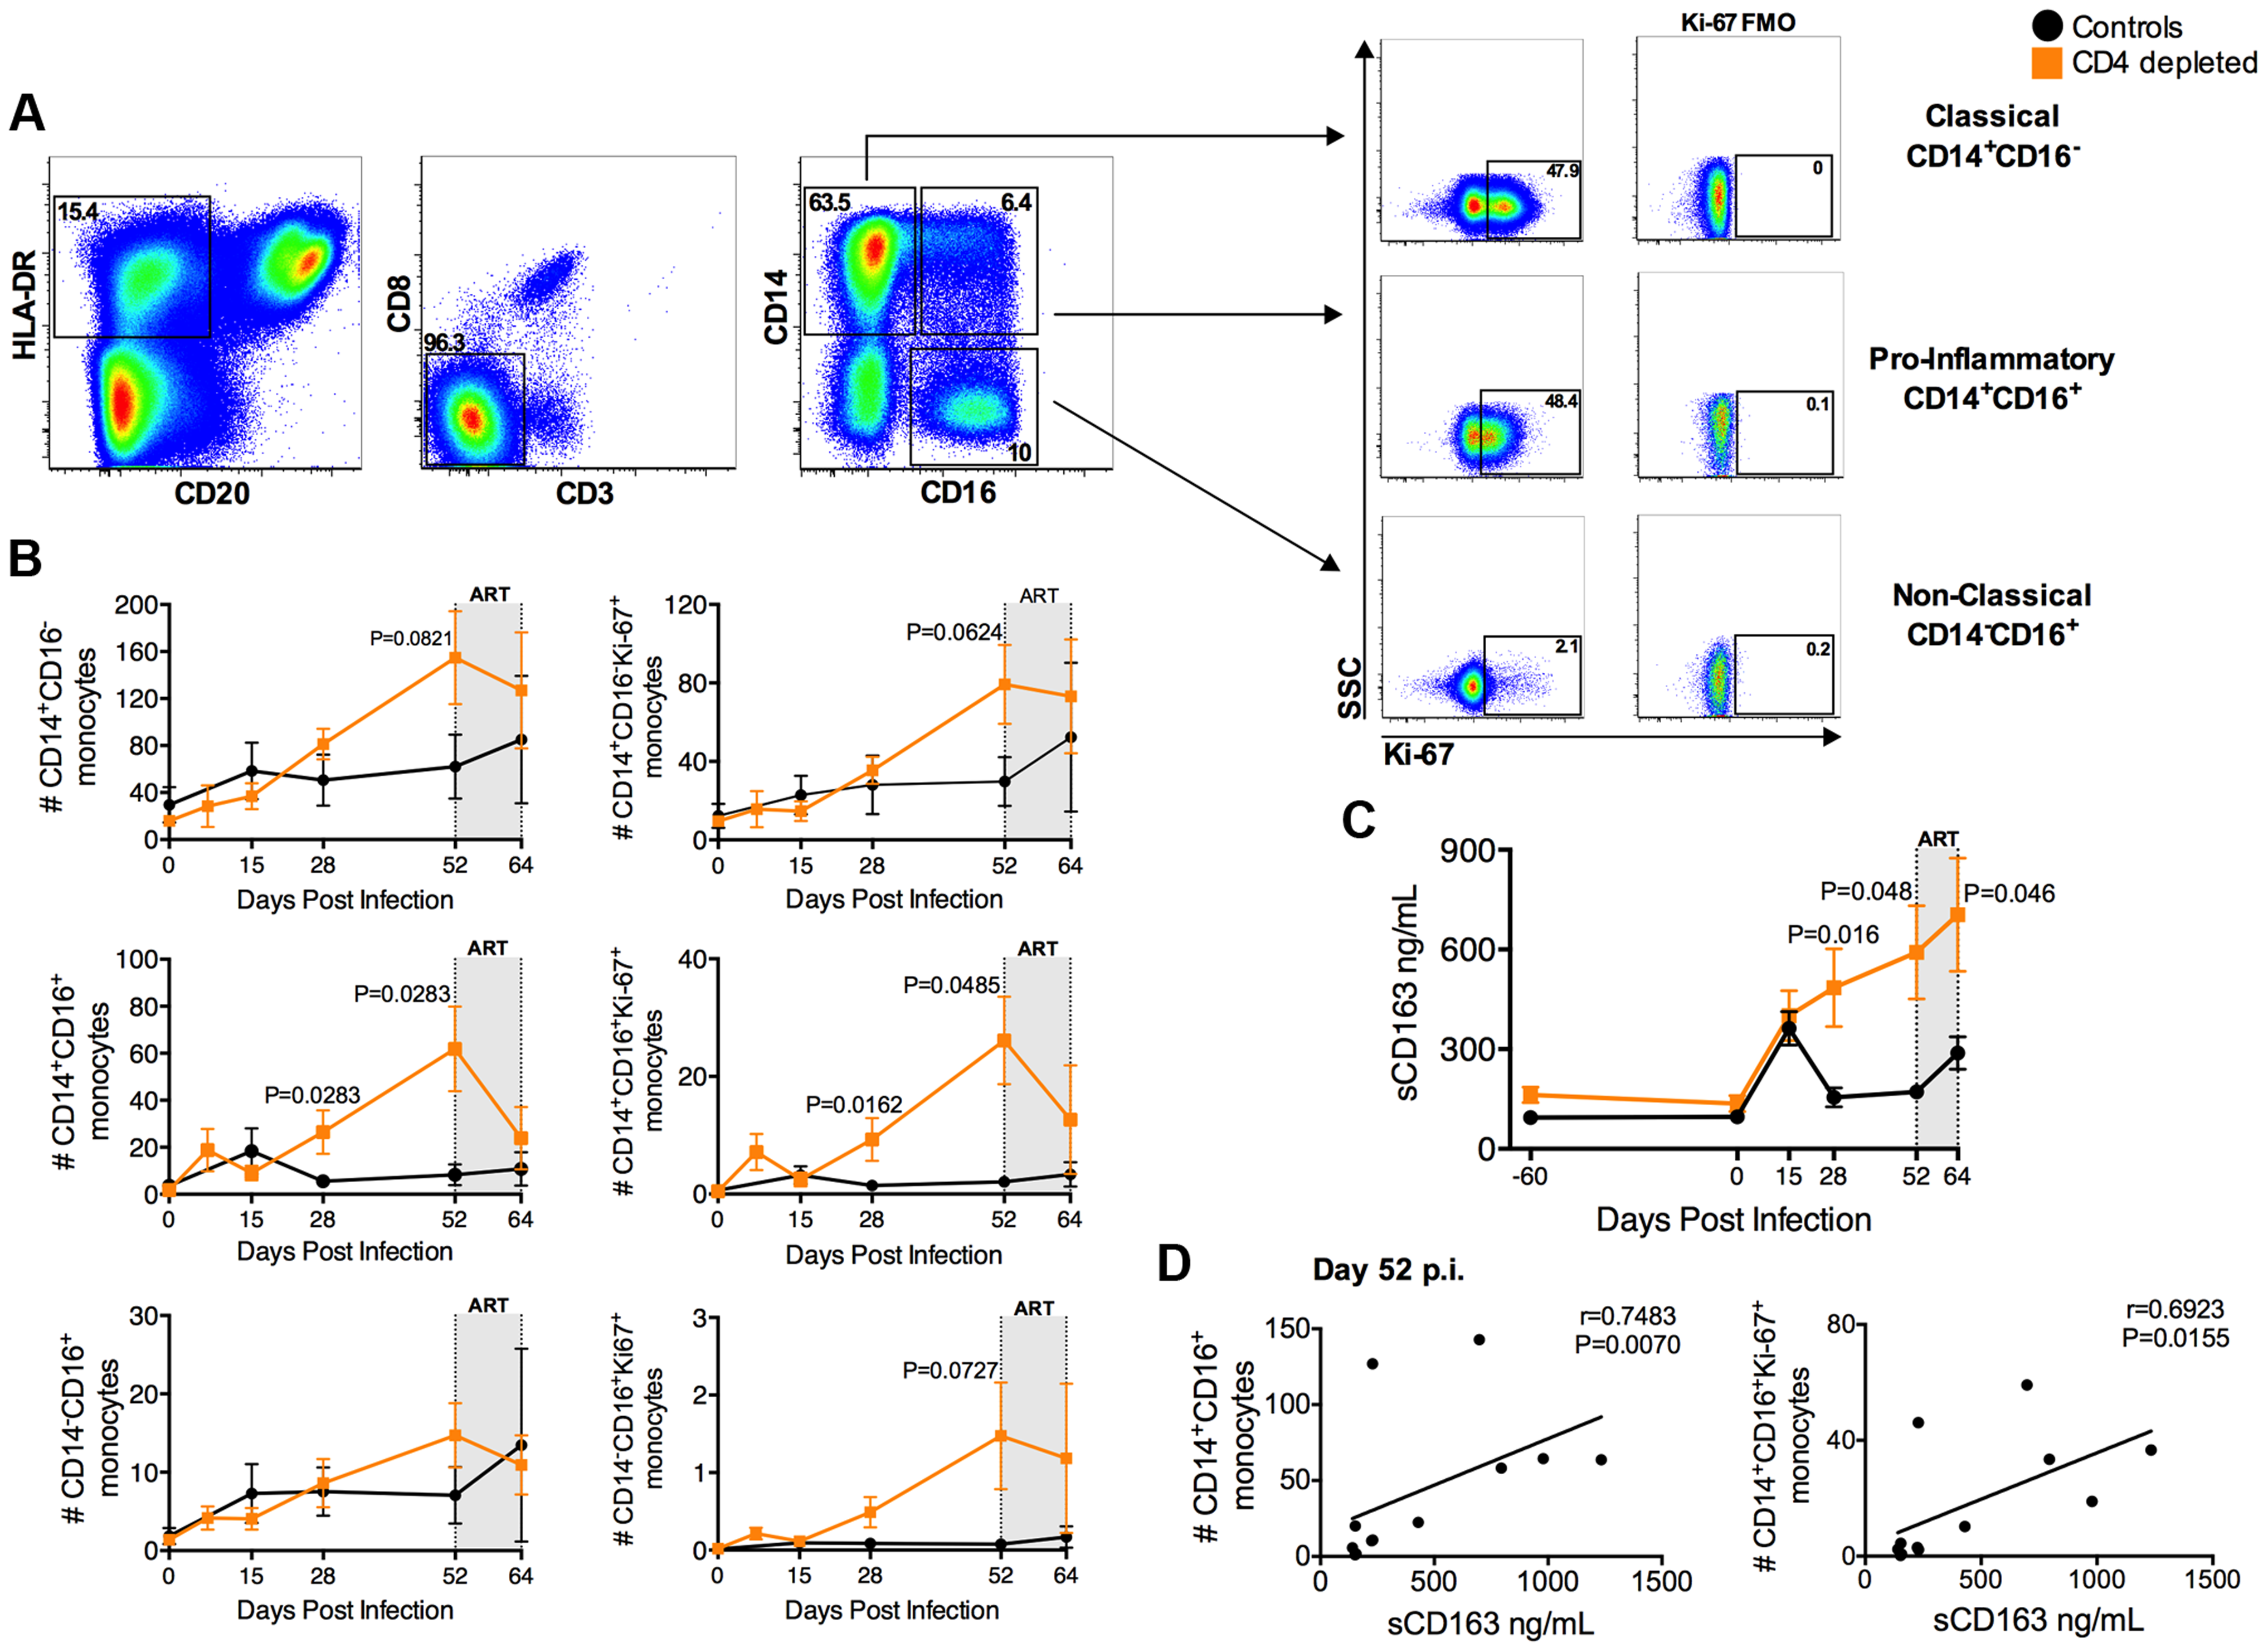 Expansion of activated, pro-inflammatory monocytes in CD4-depleted SIV-infected RMs.